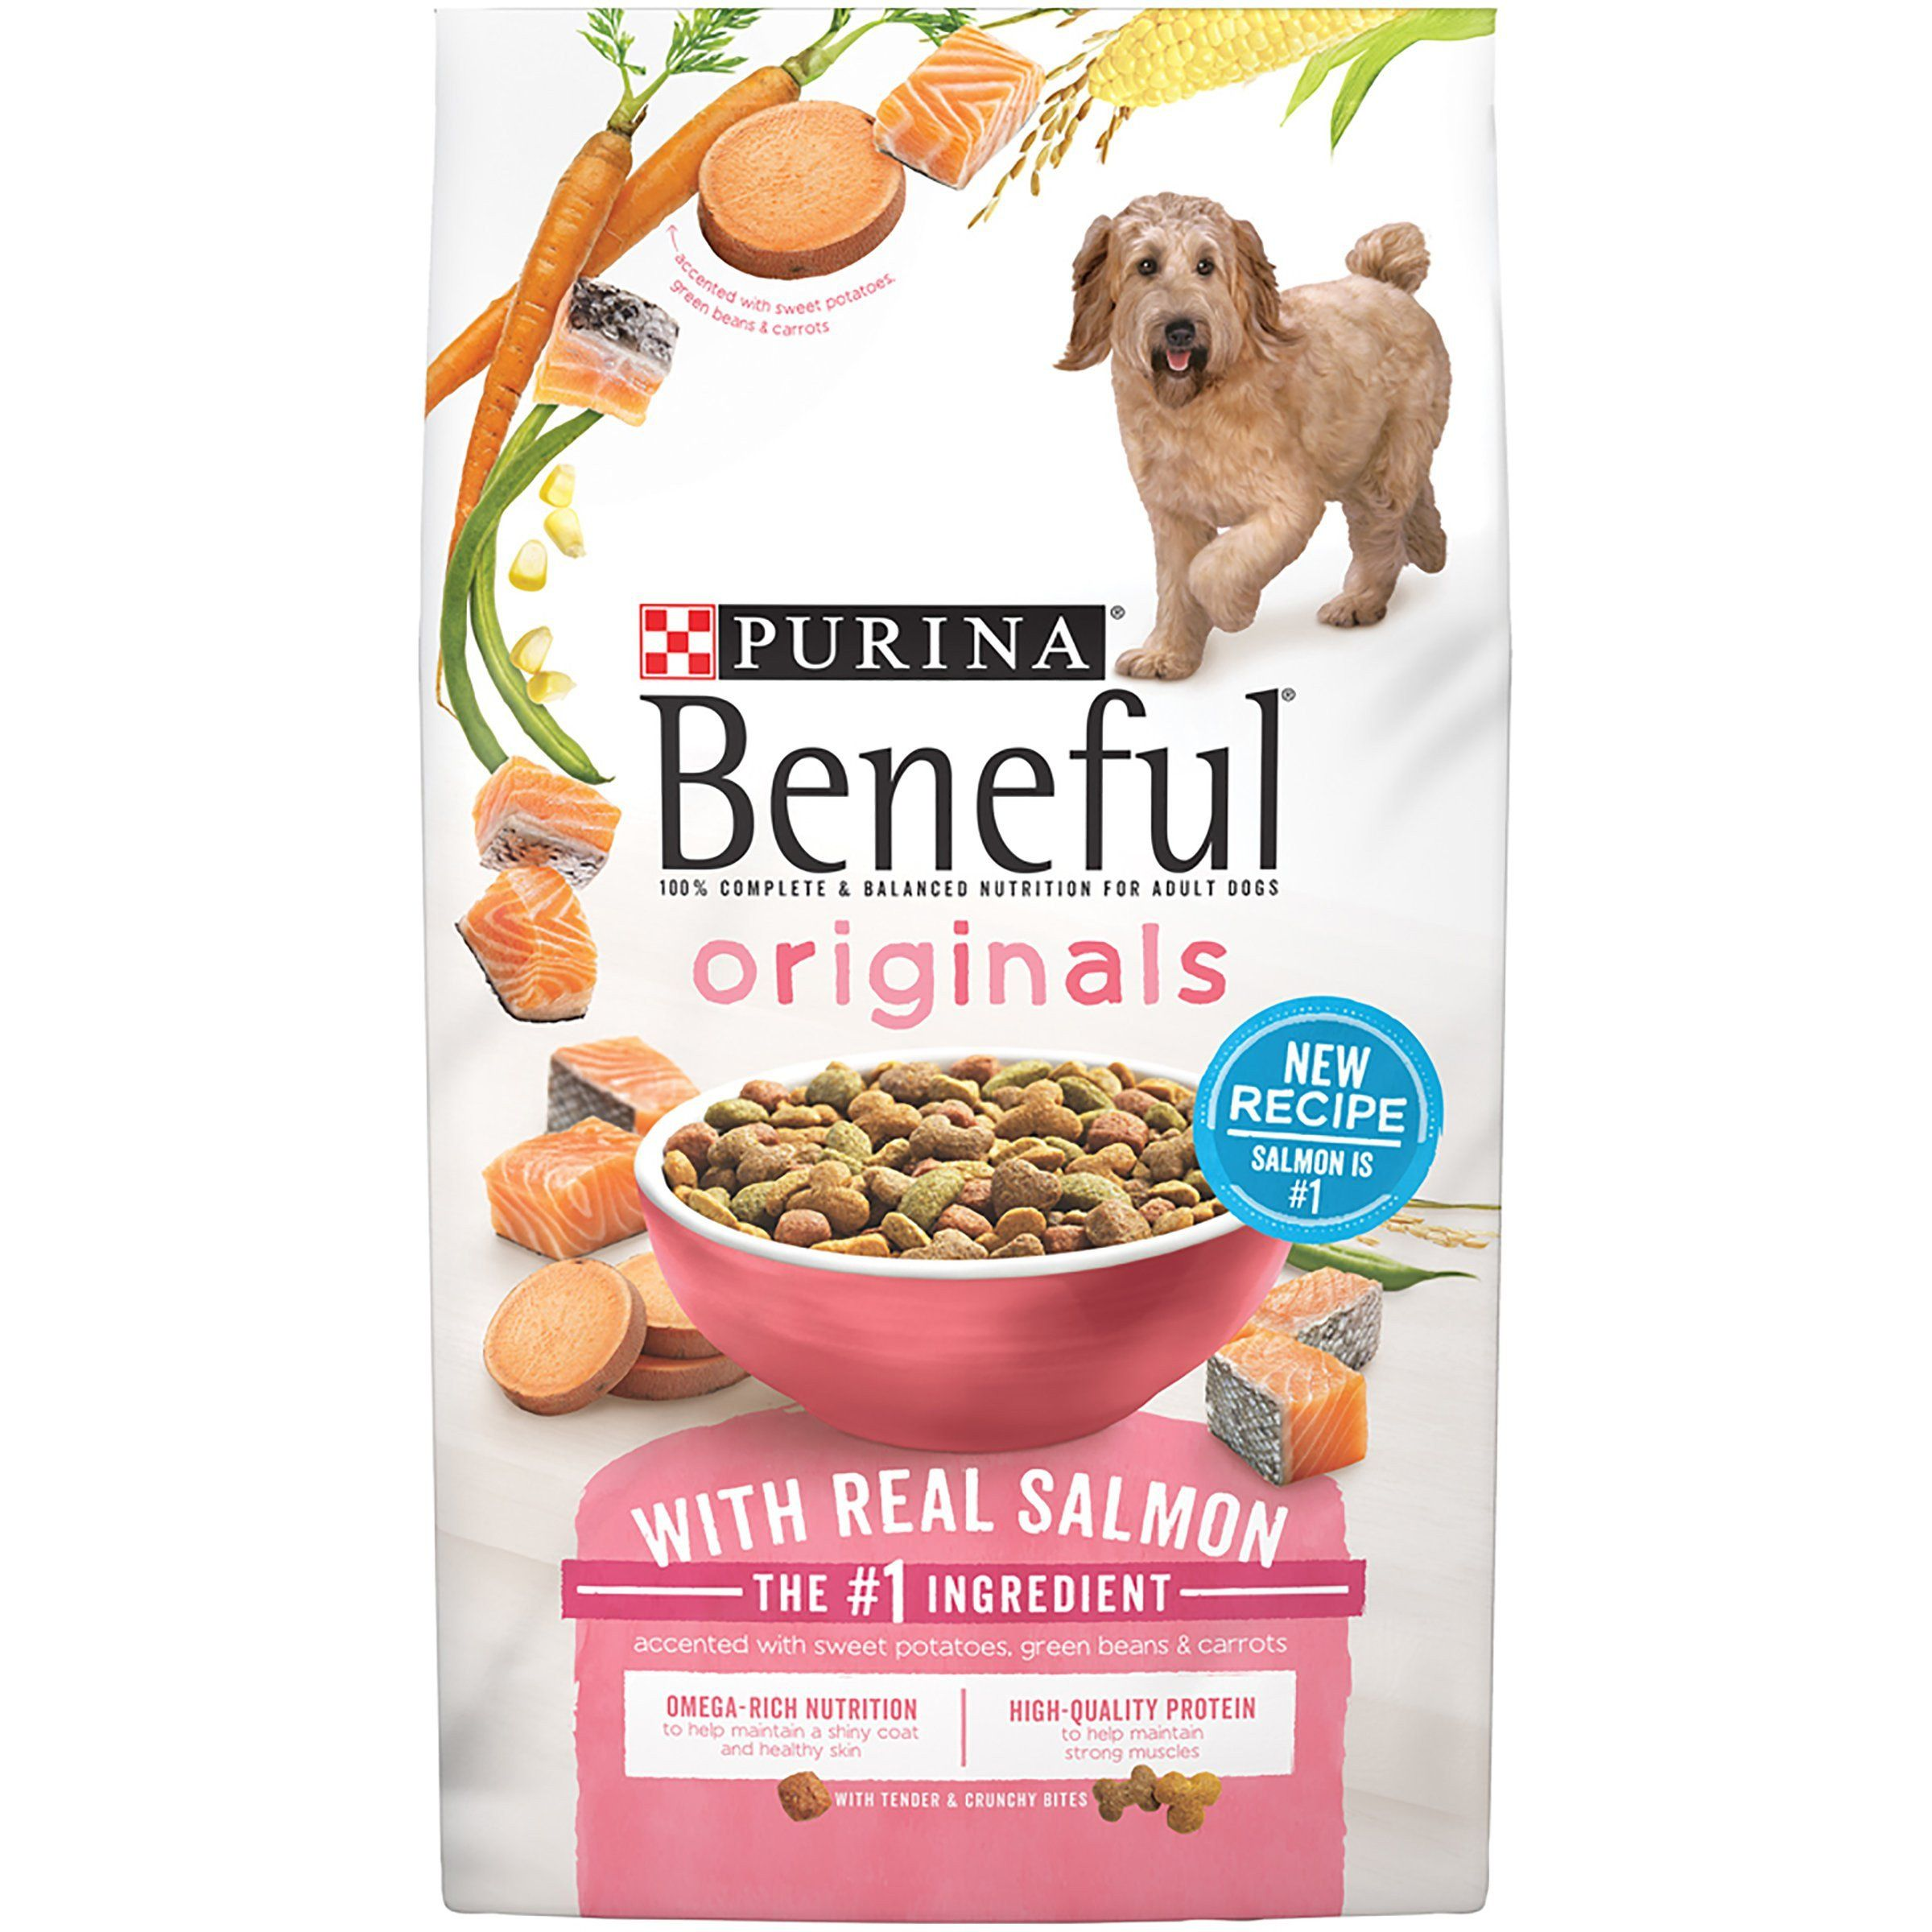 Purina Beneful Originals With Real Salmon Standard Packaging 31 1